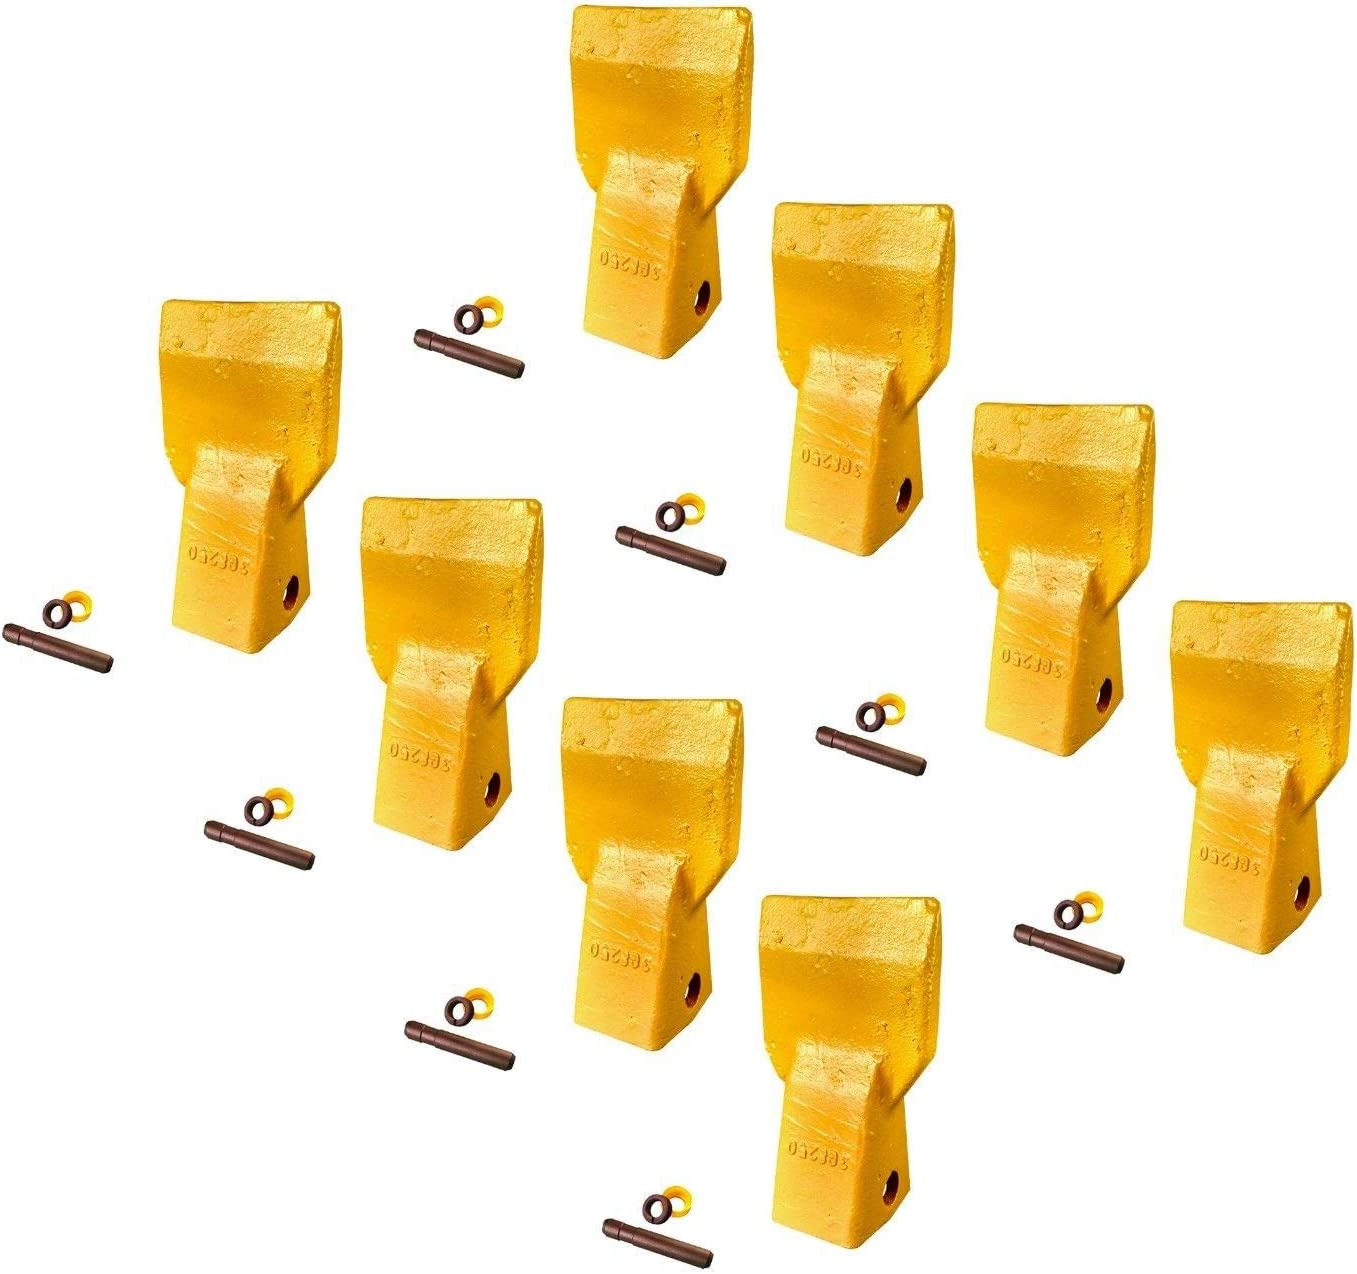 5 3G-8250 CAT J250 Style Bucket Flare Teeth w pins /& retainers 208-5254